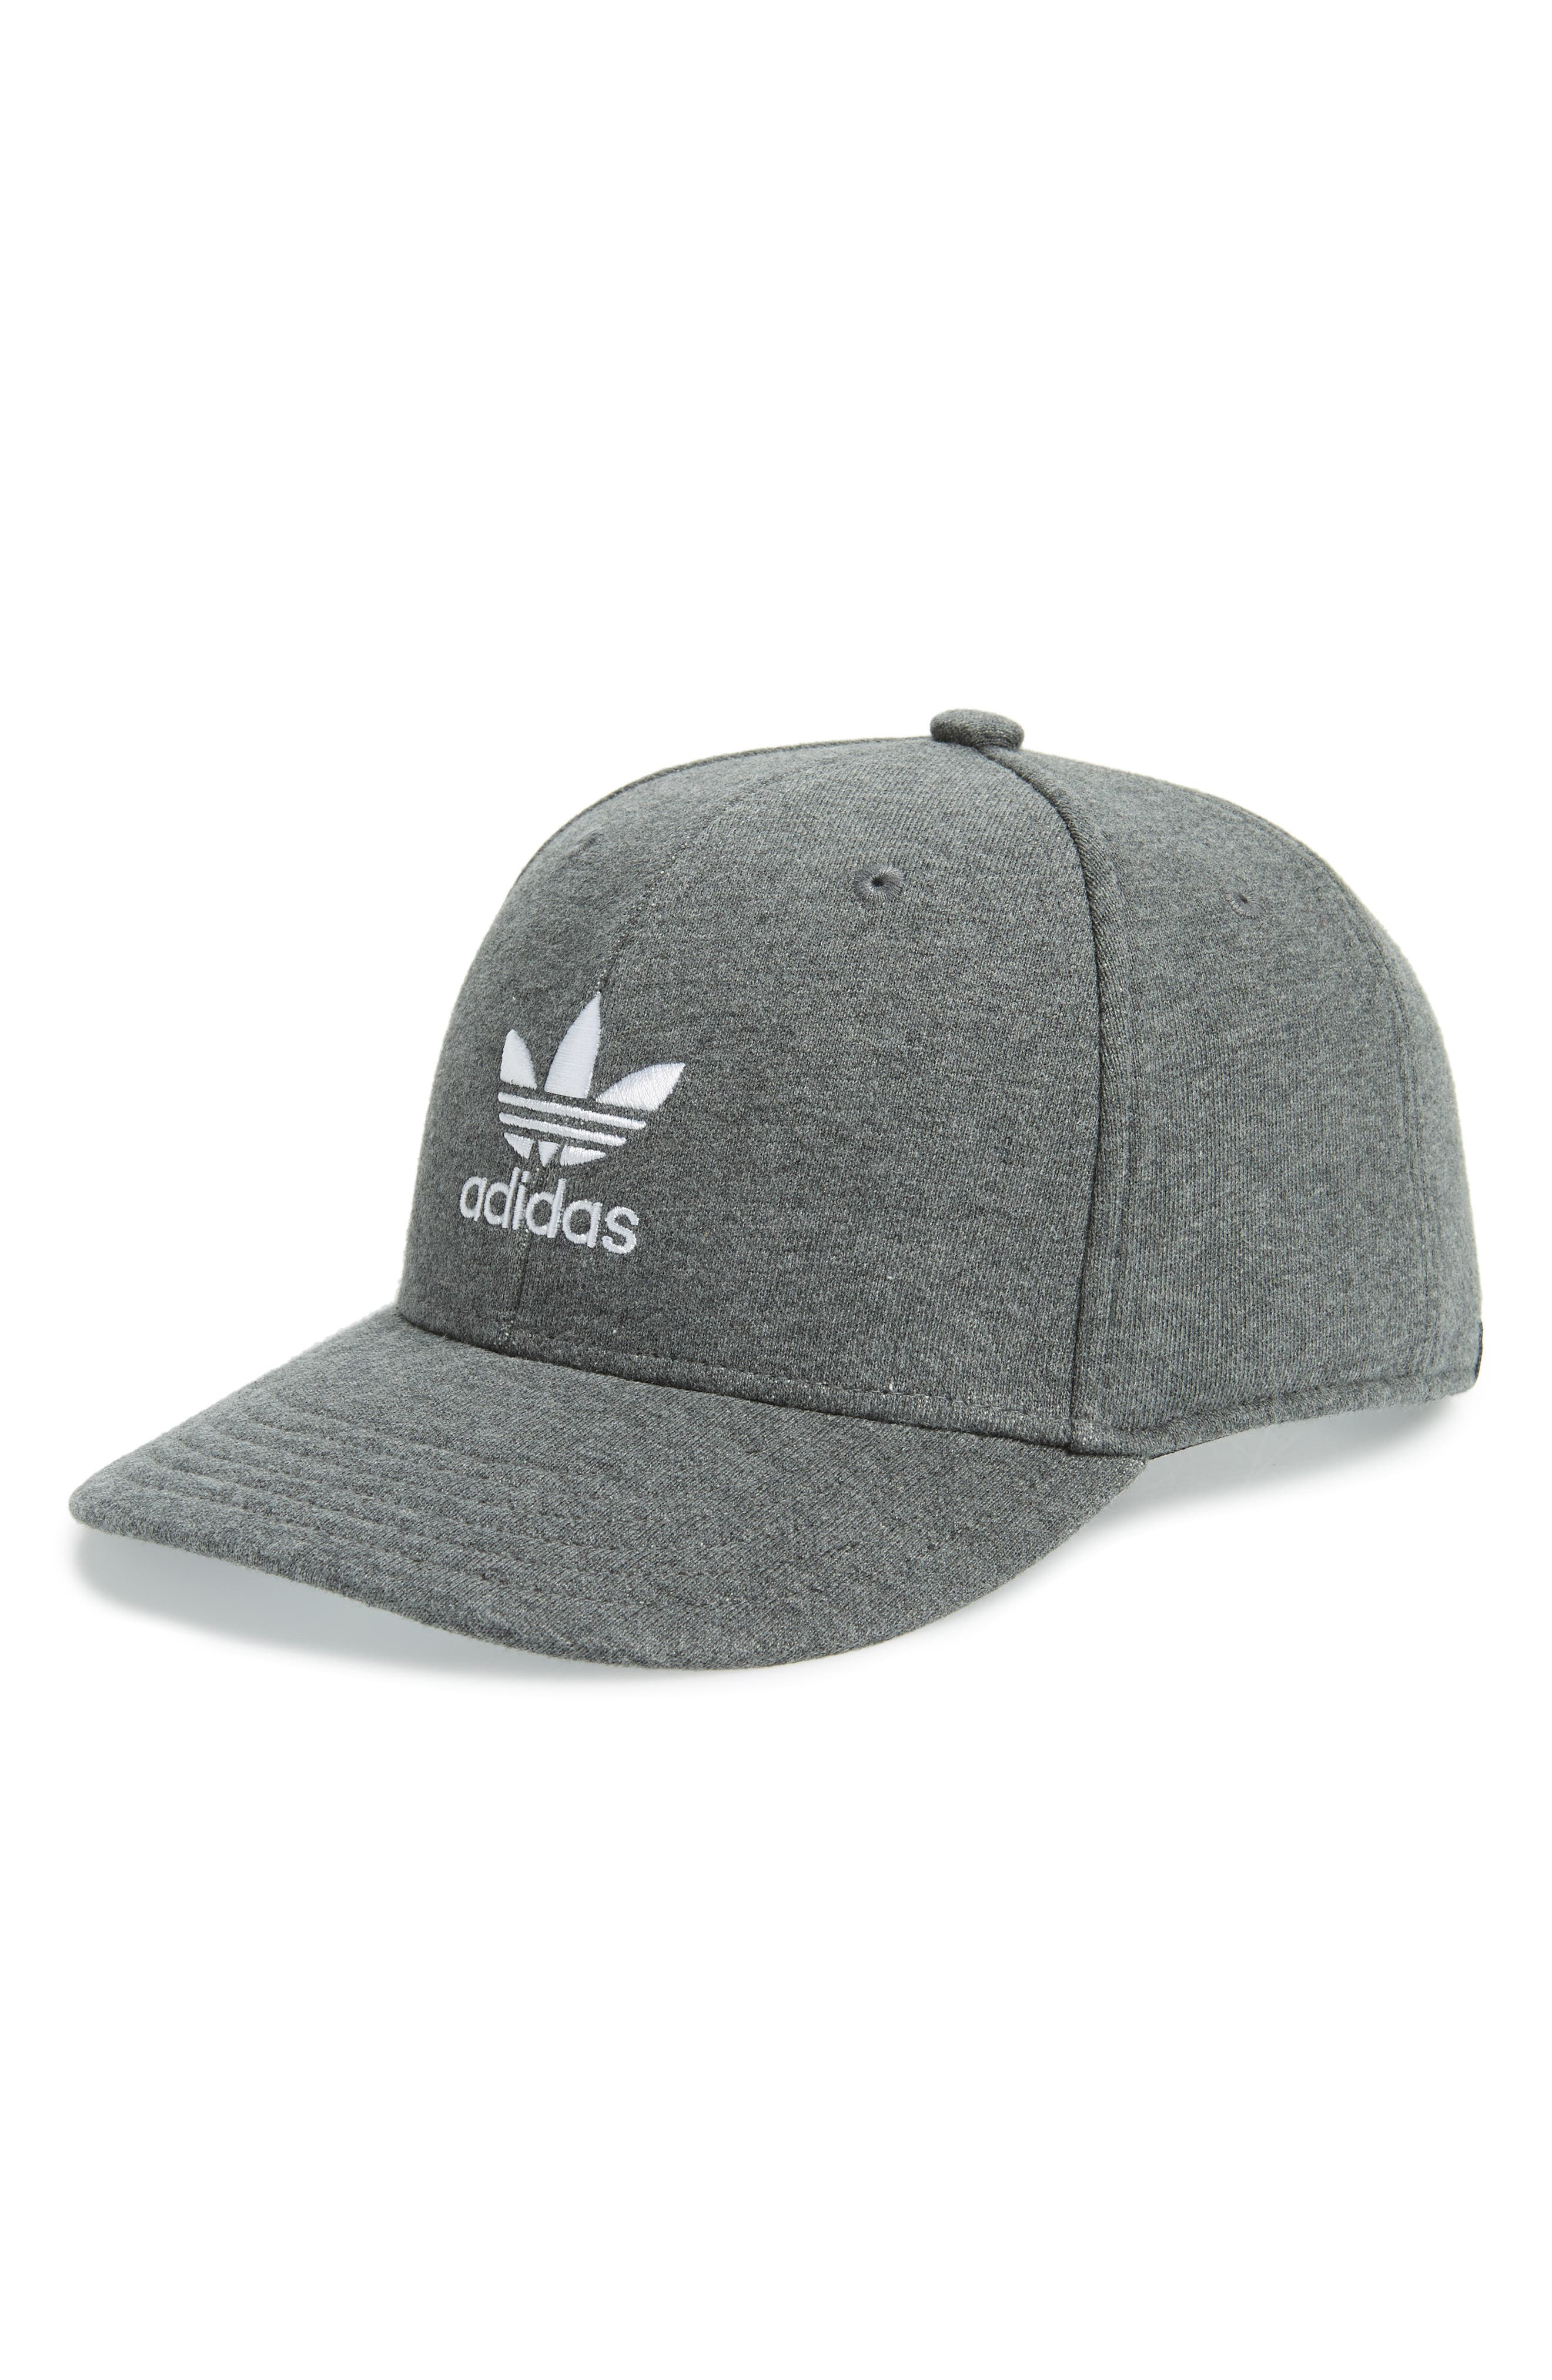 ec4b4c37361 Men s Adidas Originals Hats